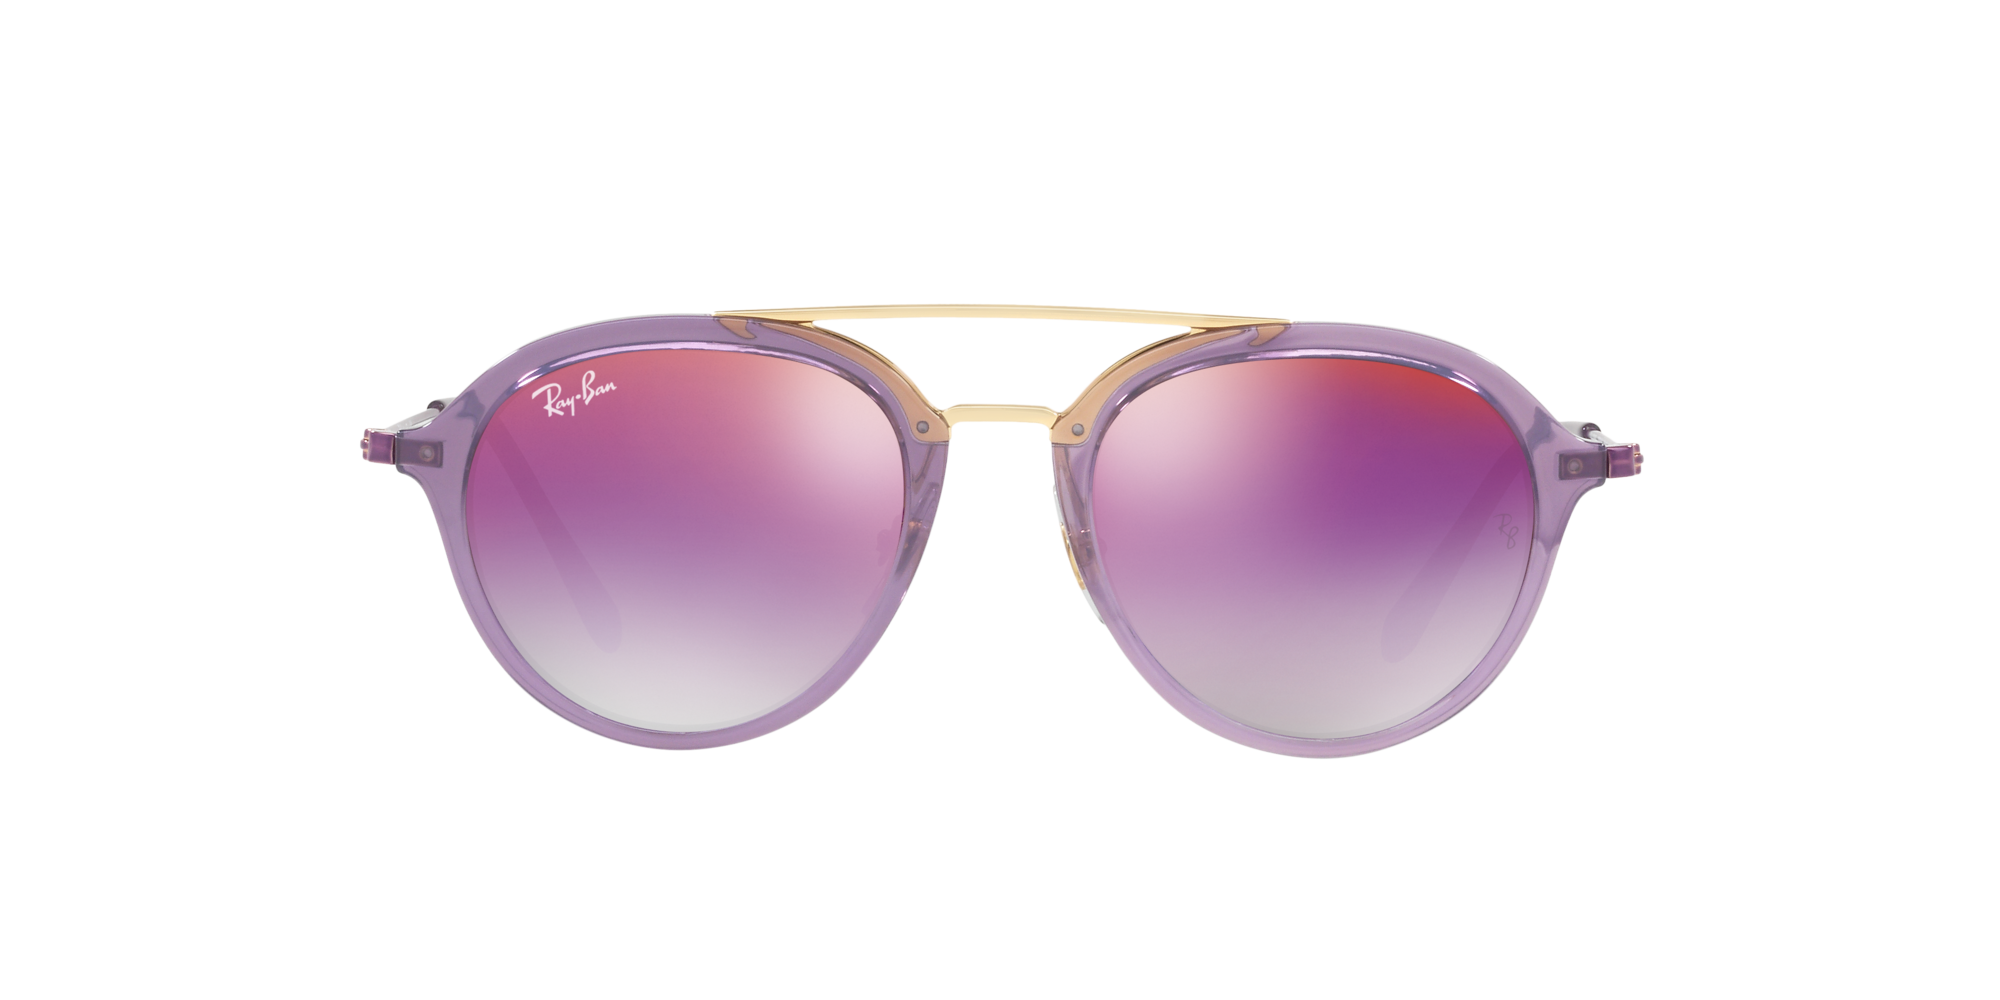 7986685827c34 ... niños RAY-BAN JUNIOR RJ 9065S 7036A9. 360° Product View 360° Product  View ...